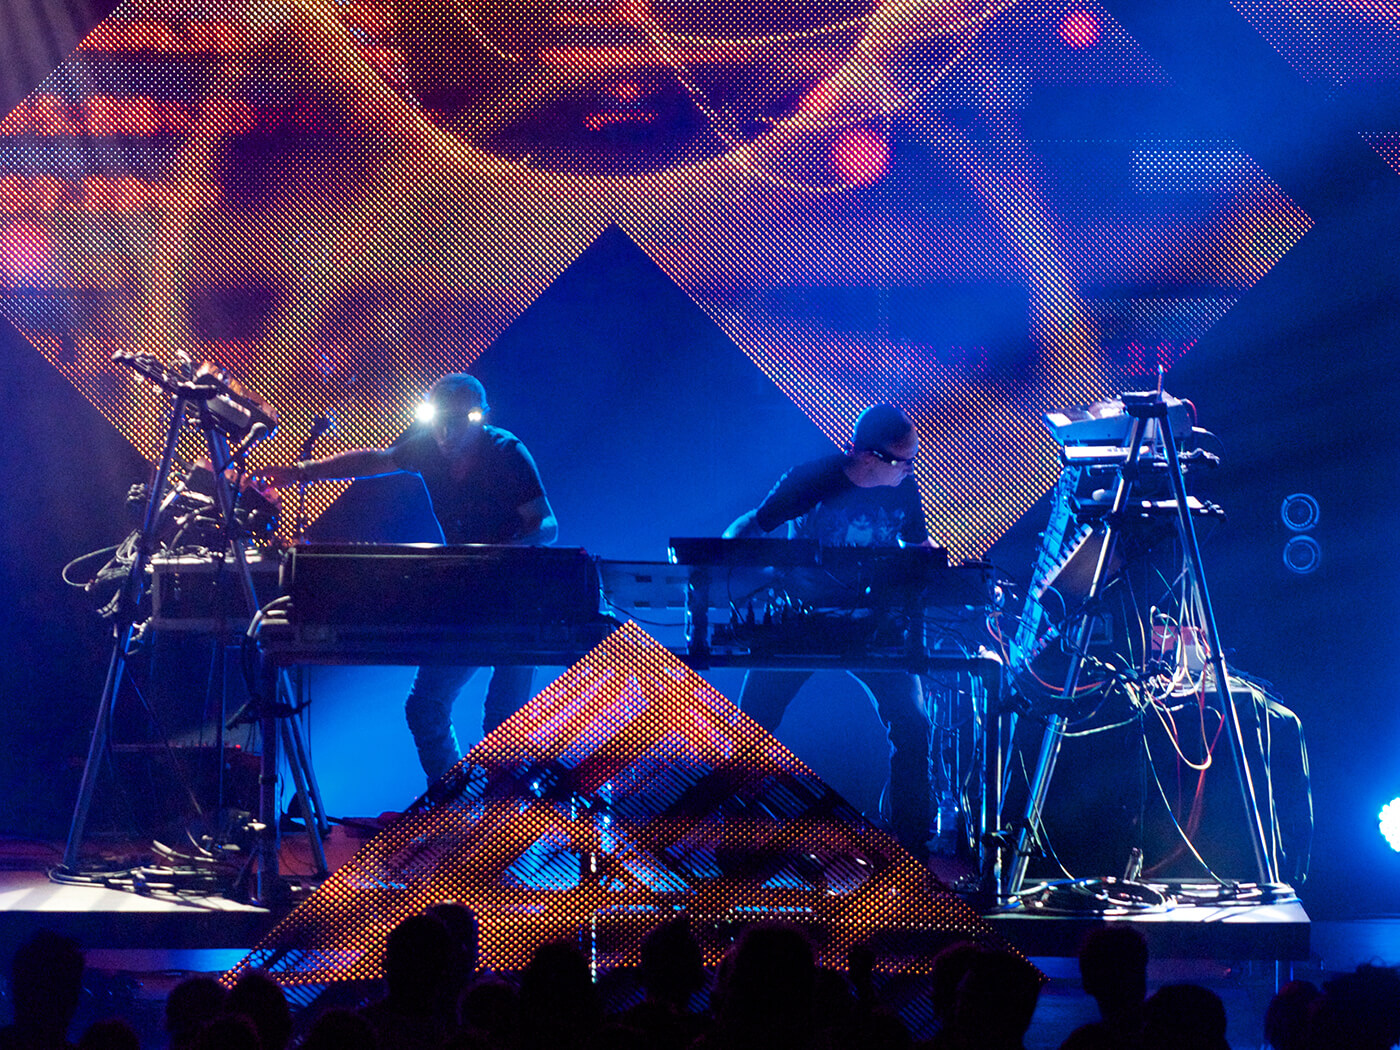 Orbital incorporate a wide variety of synths into their live rig, with the Bass Station (and its successor) providing one of their go-to sounds